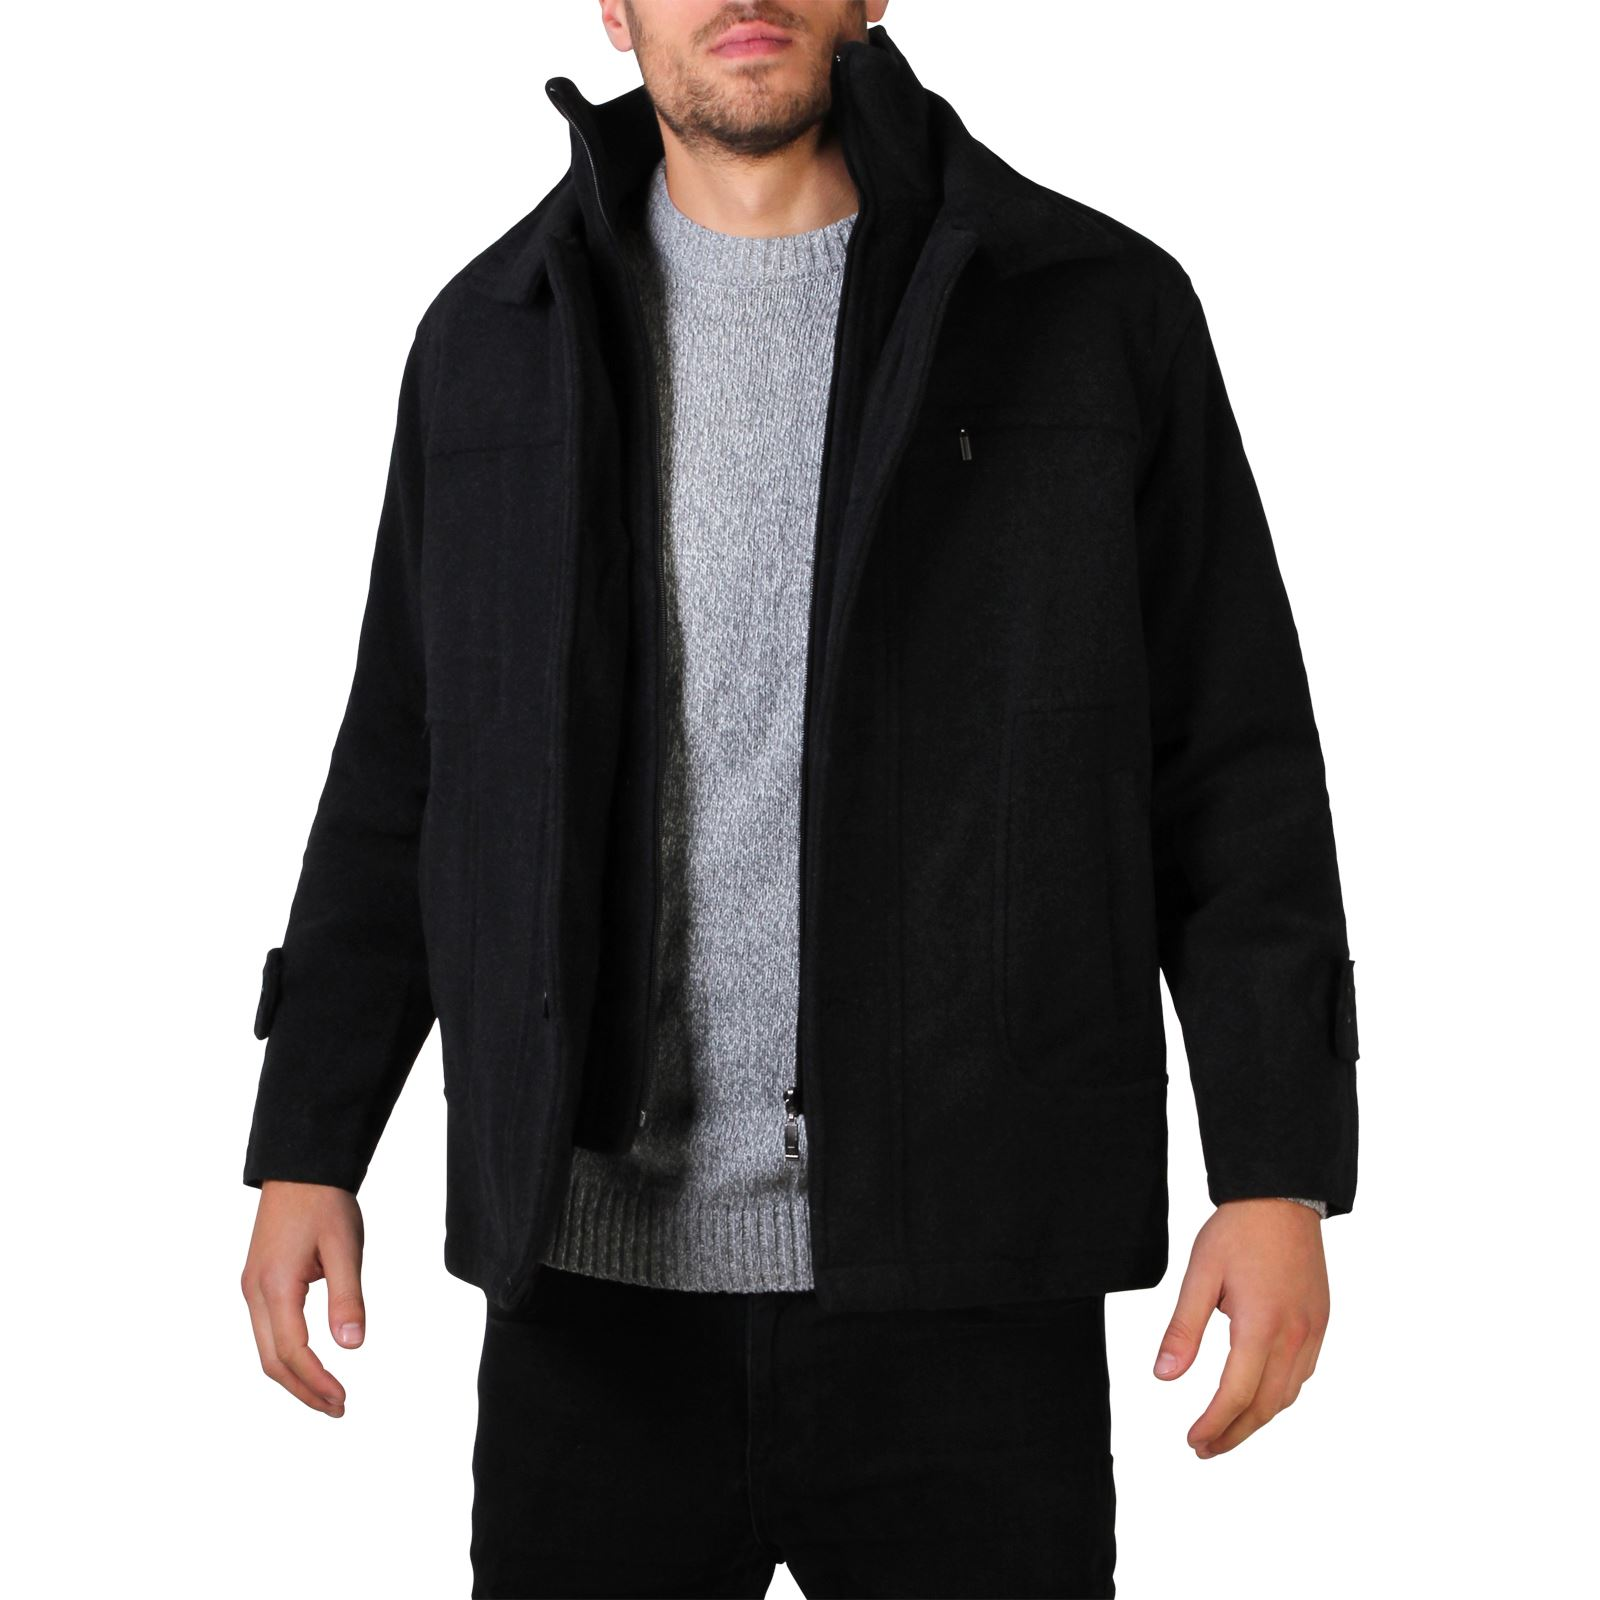 Smart black wool jacket